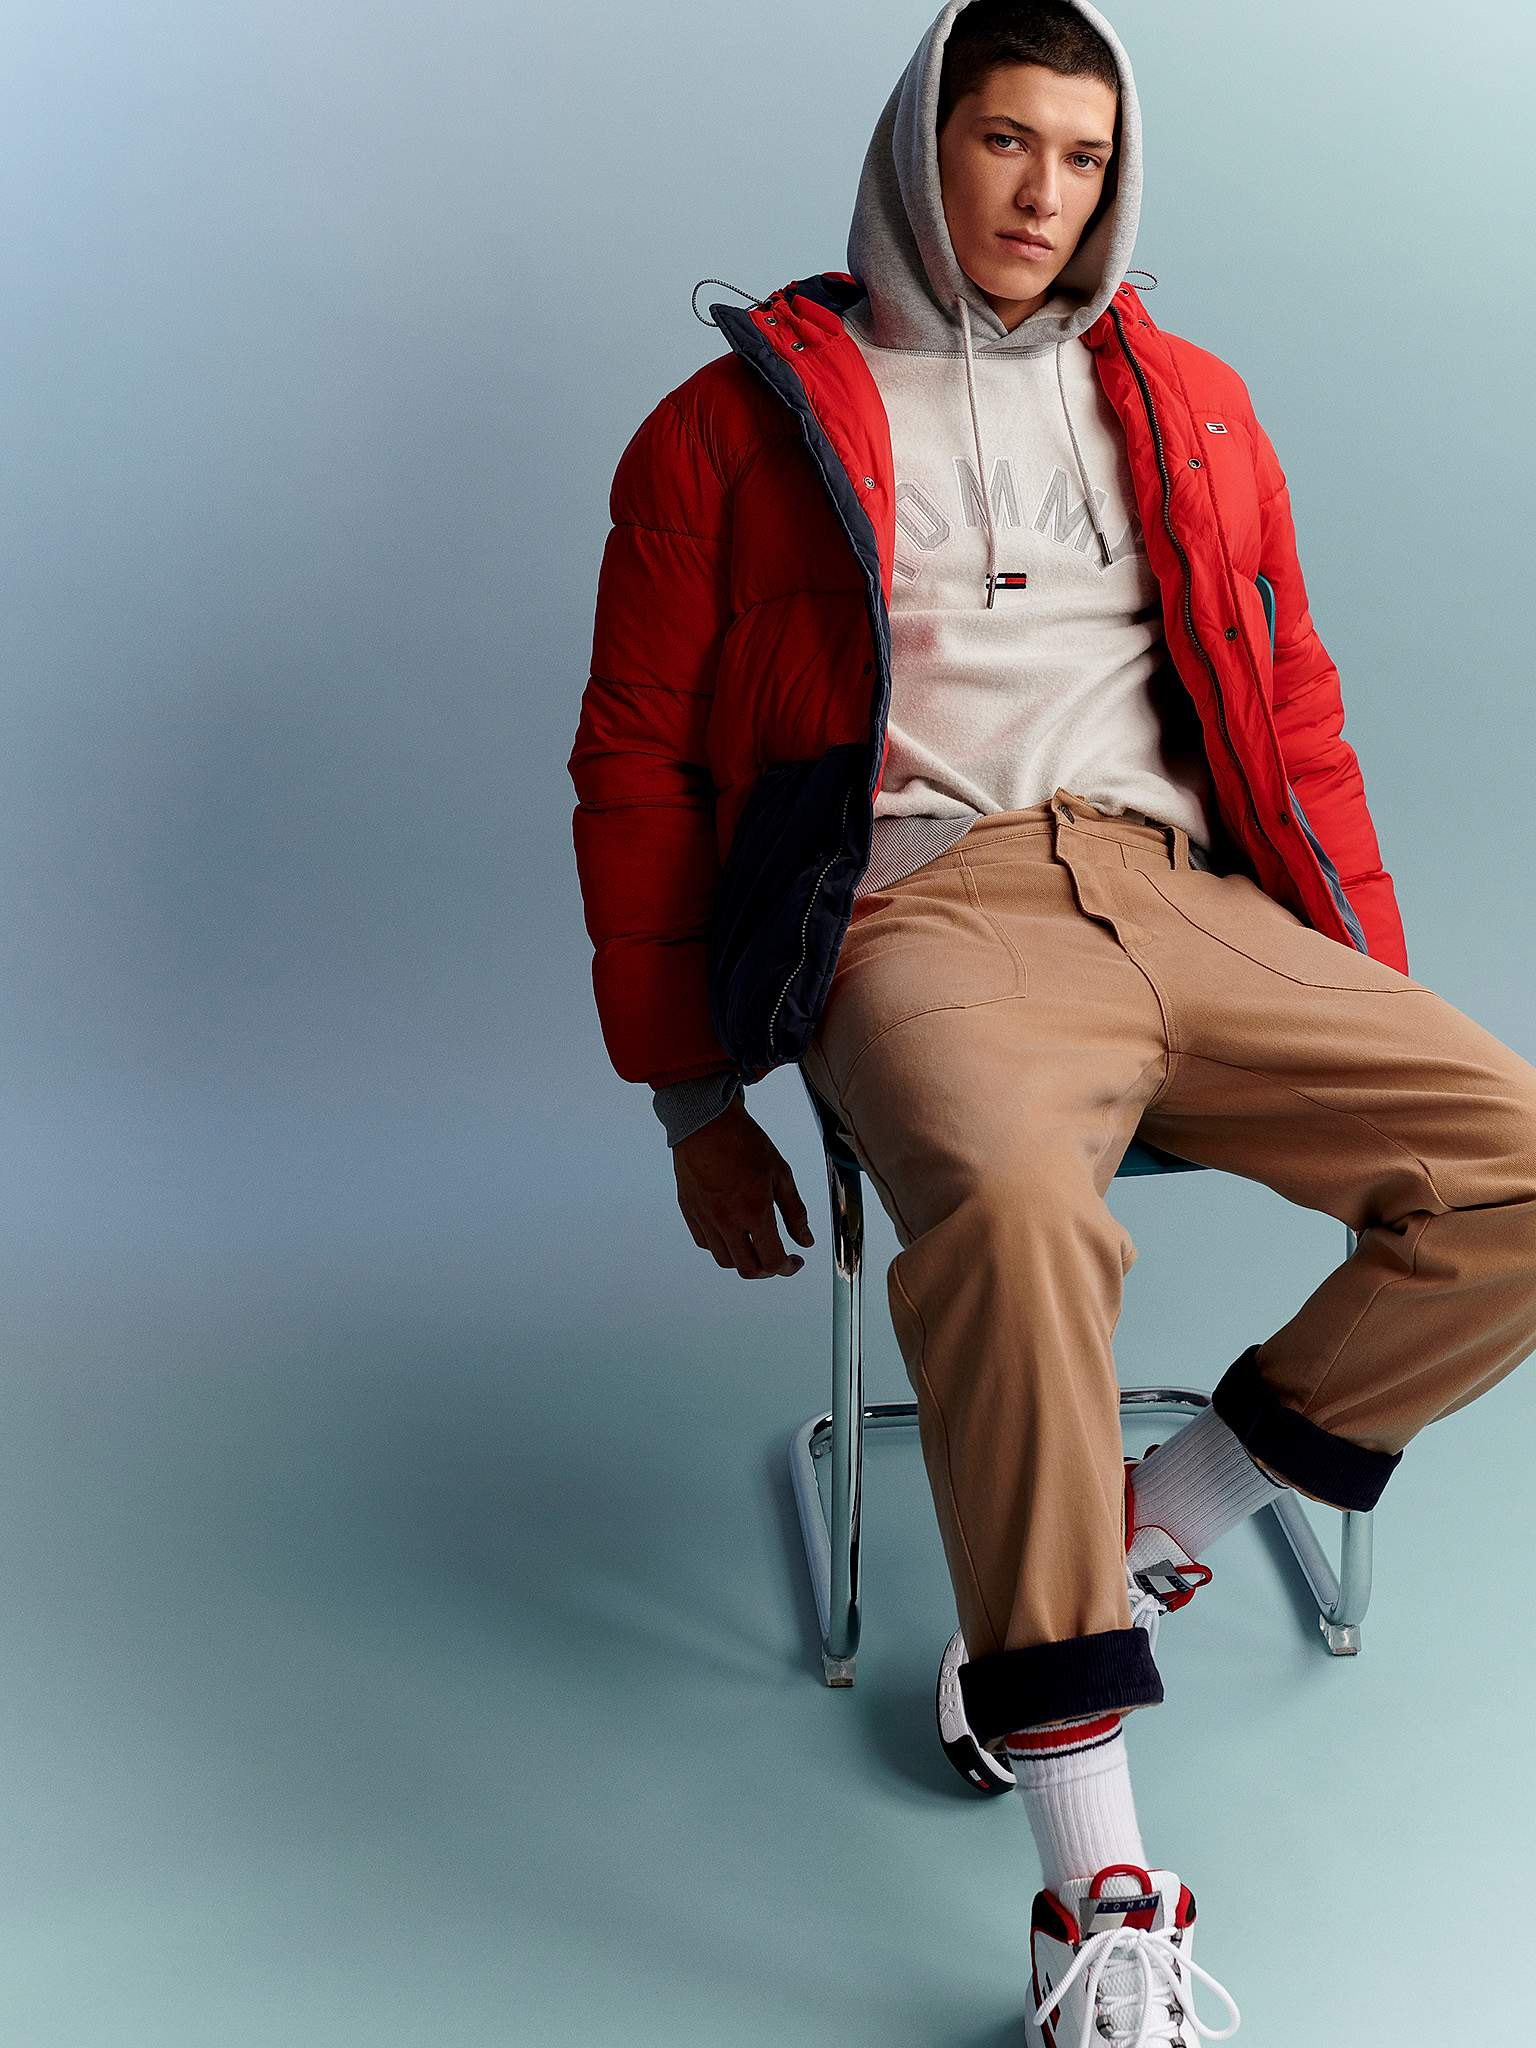 Tommy Hilfiger Fall 2019 Jeans Collection